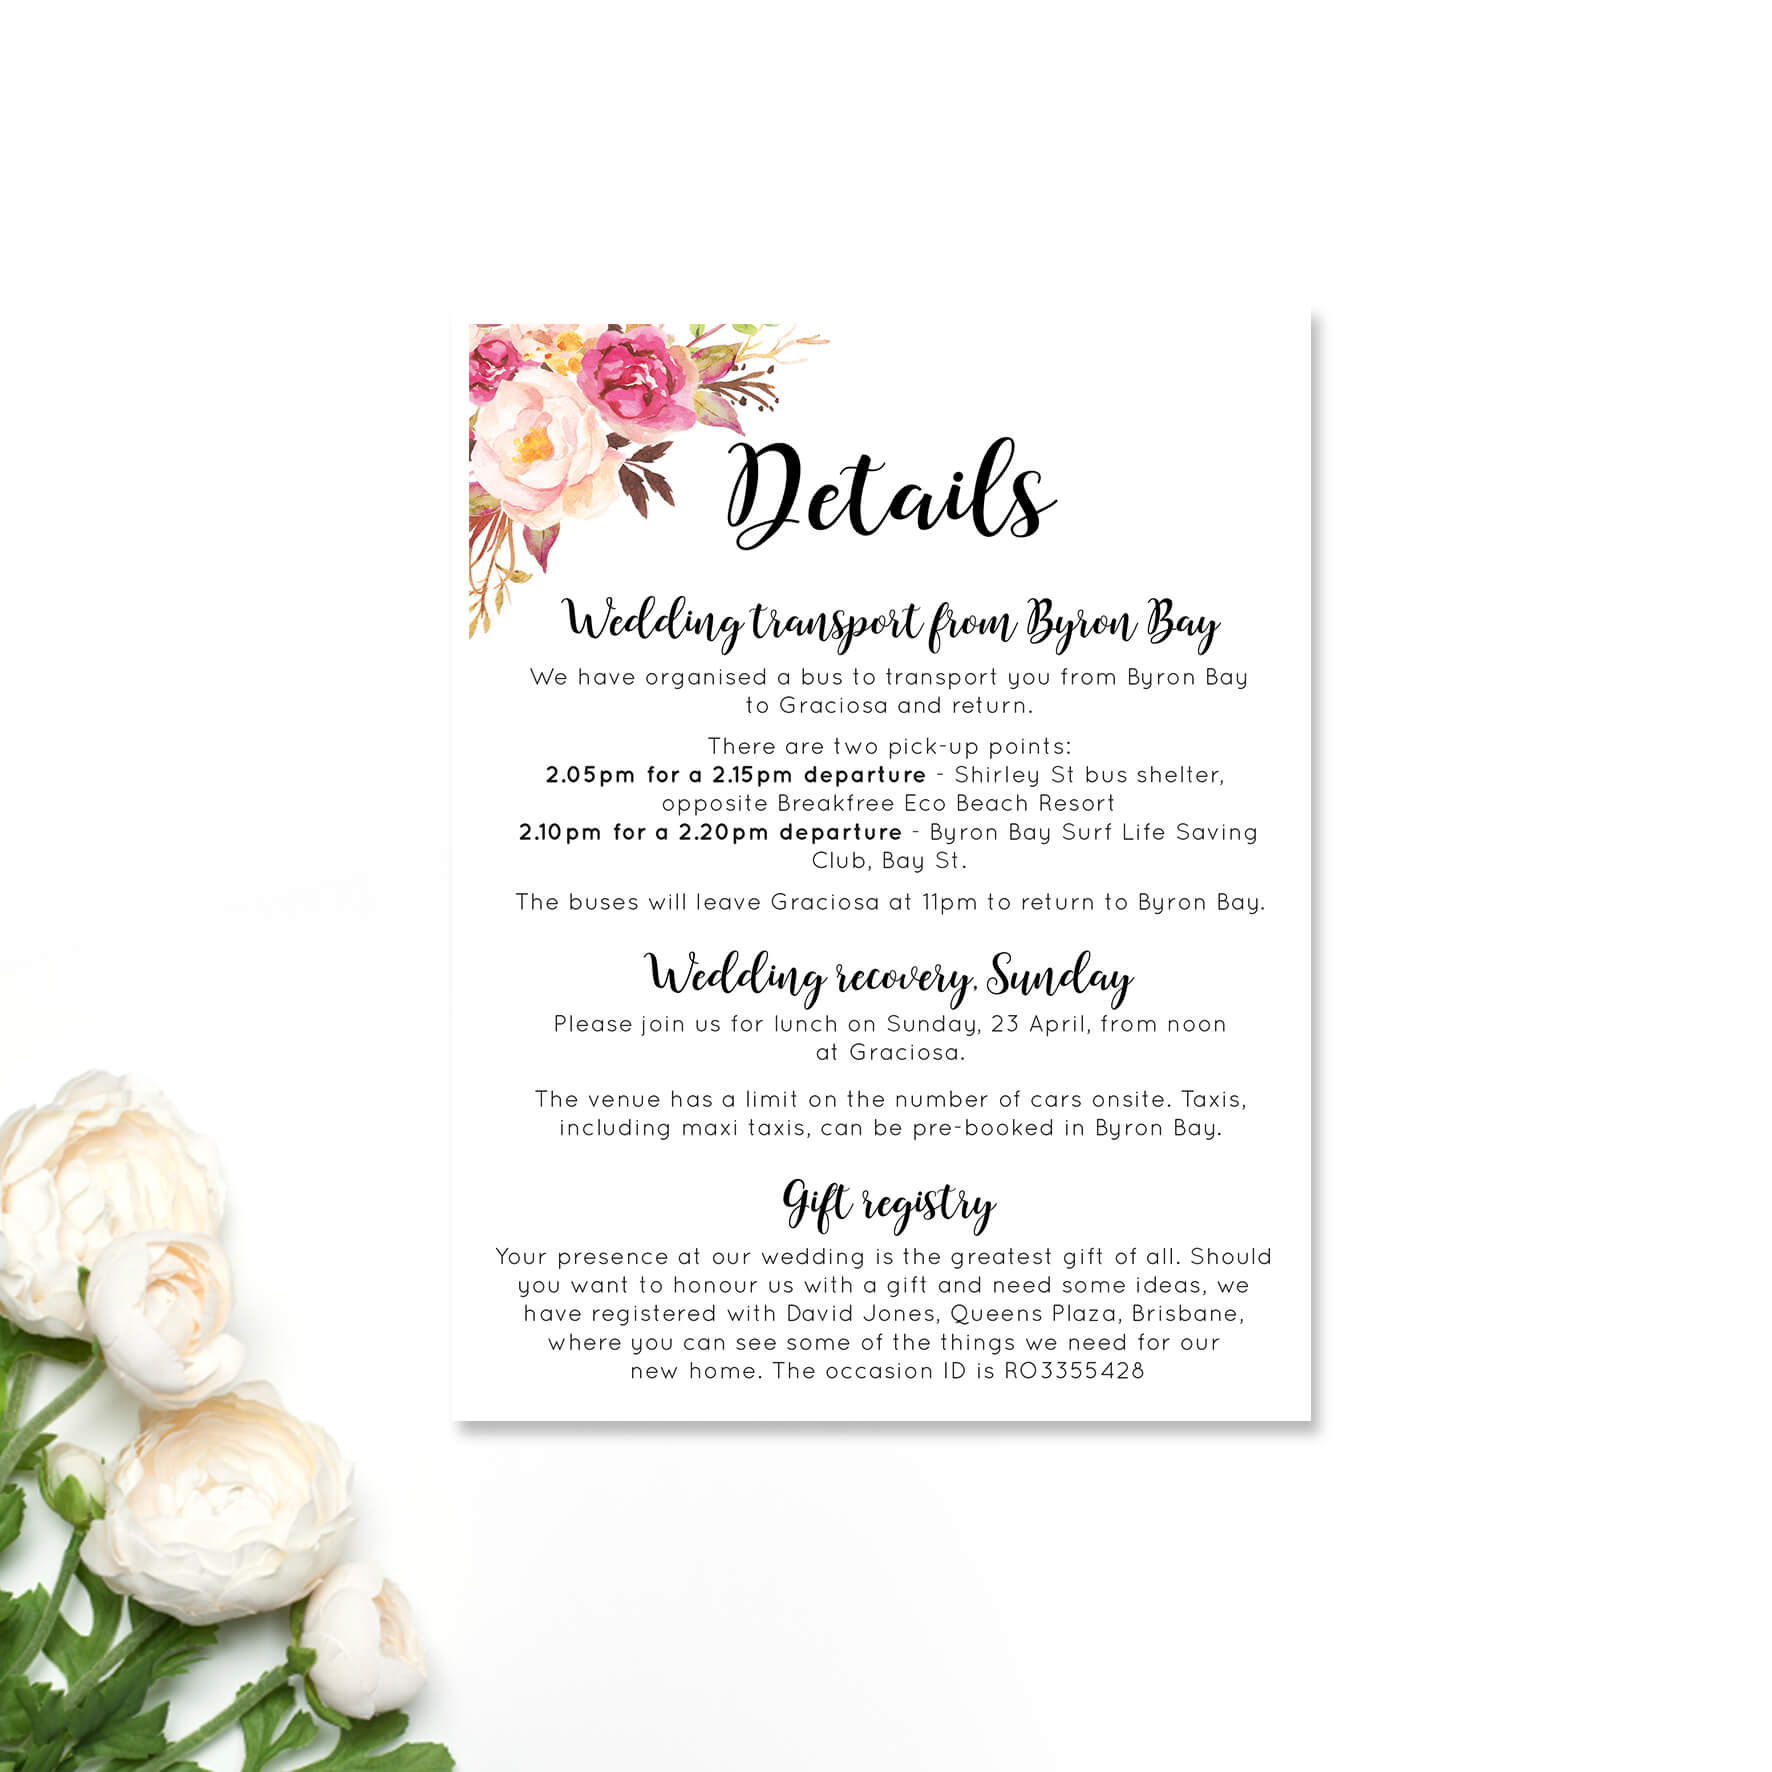 Detail Cards For Wedding Invitations Hotel Accommodation in Wedding Hotel Information Card Template